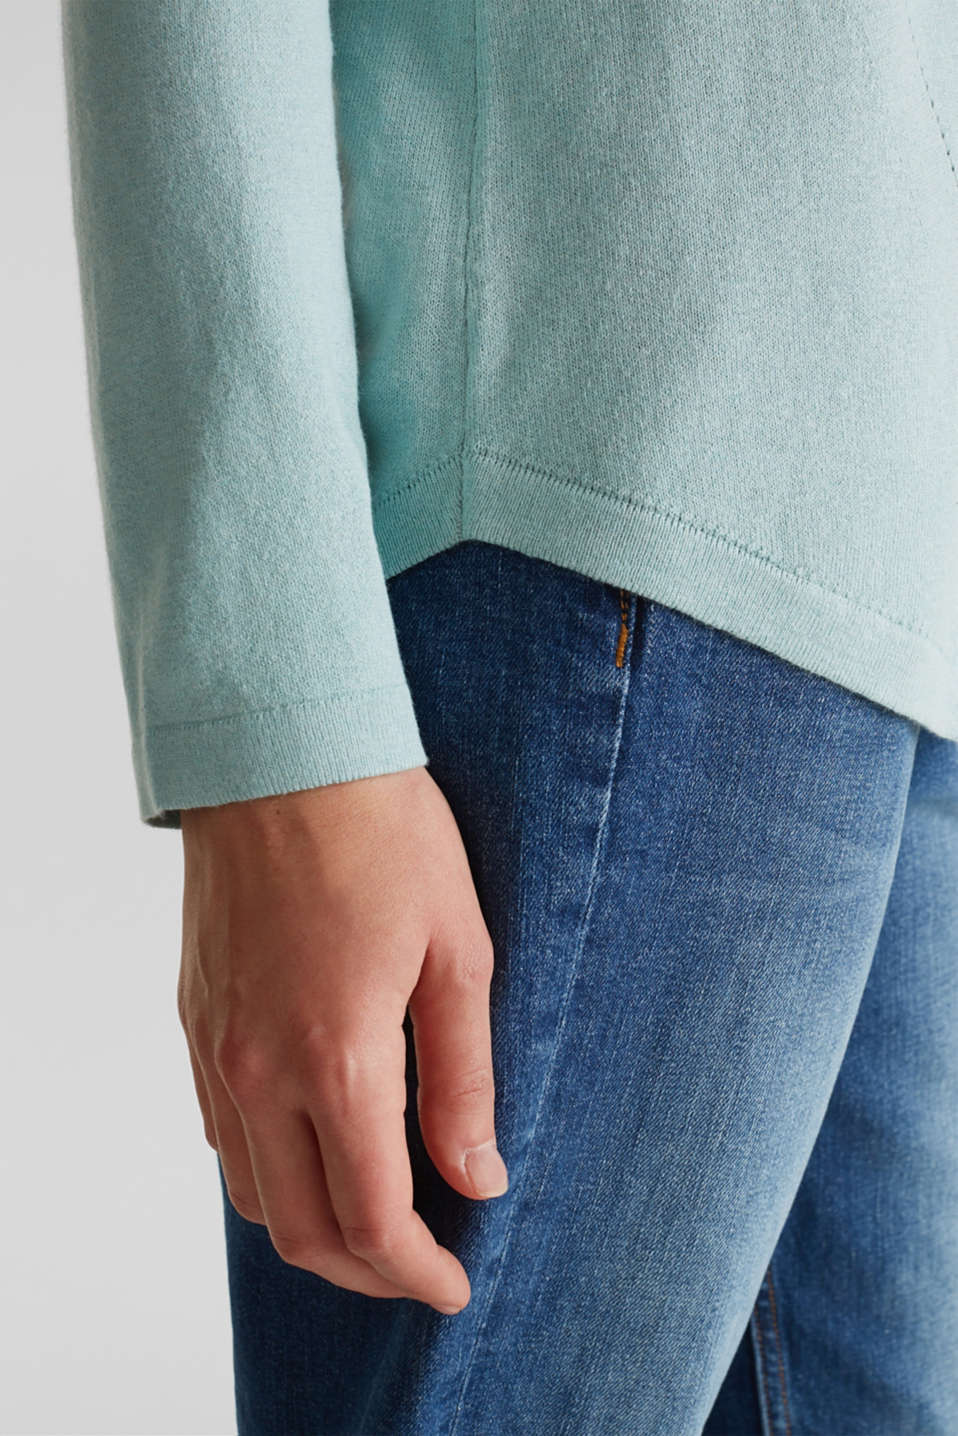 With linen: Jumper with open-work patterned details, LIGHT AQUA GREEN, detail image number 4